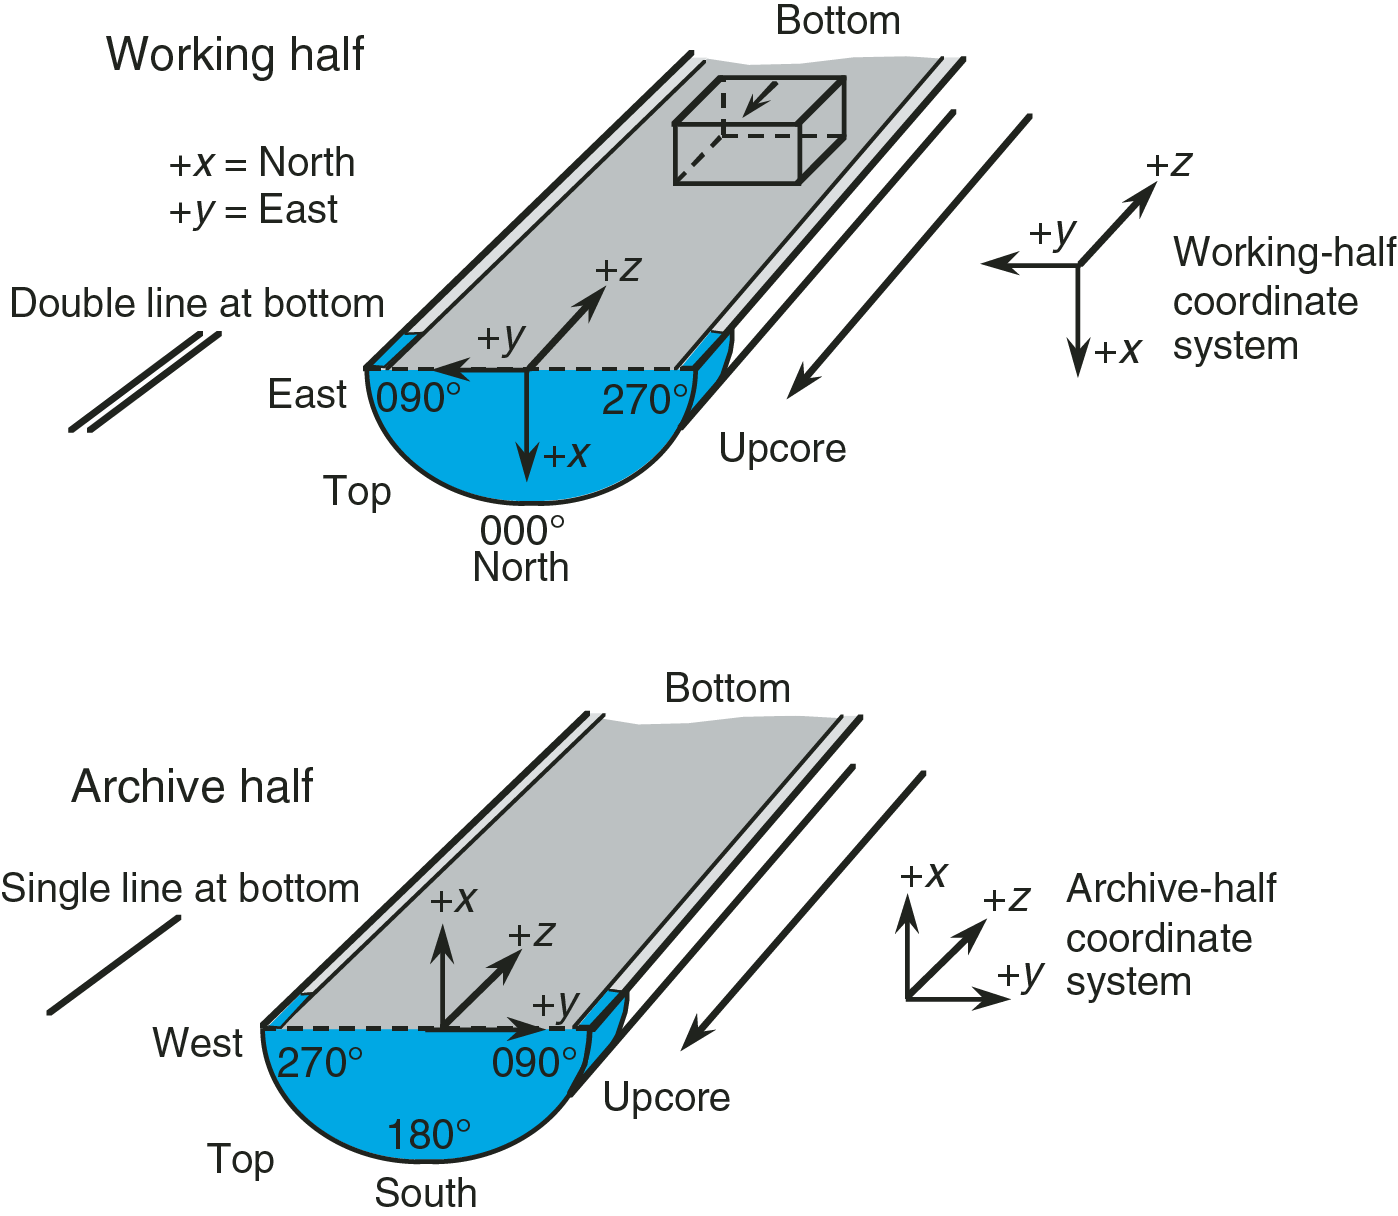 Iodp Publications Volume 365 Expedition Reports Bulletin Board Service Motorized Grain Mill Wiring Question Help F30 Orientation System Used For Sampling Cubes Paleomagnetism Analysis